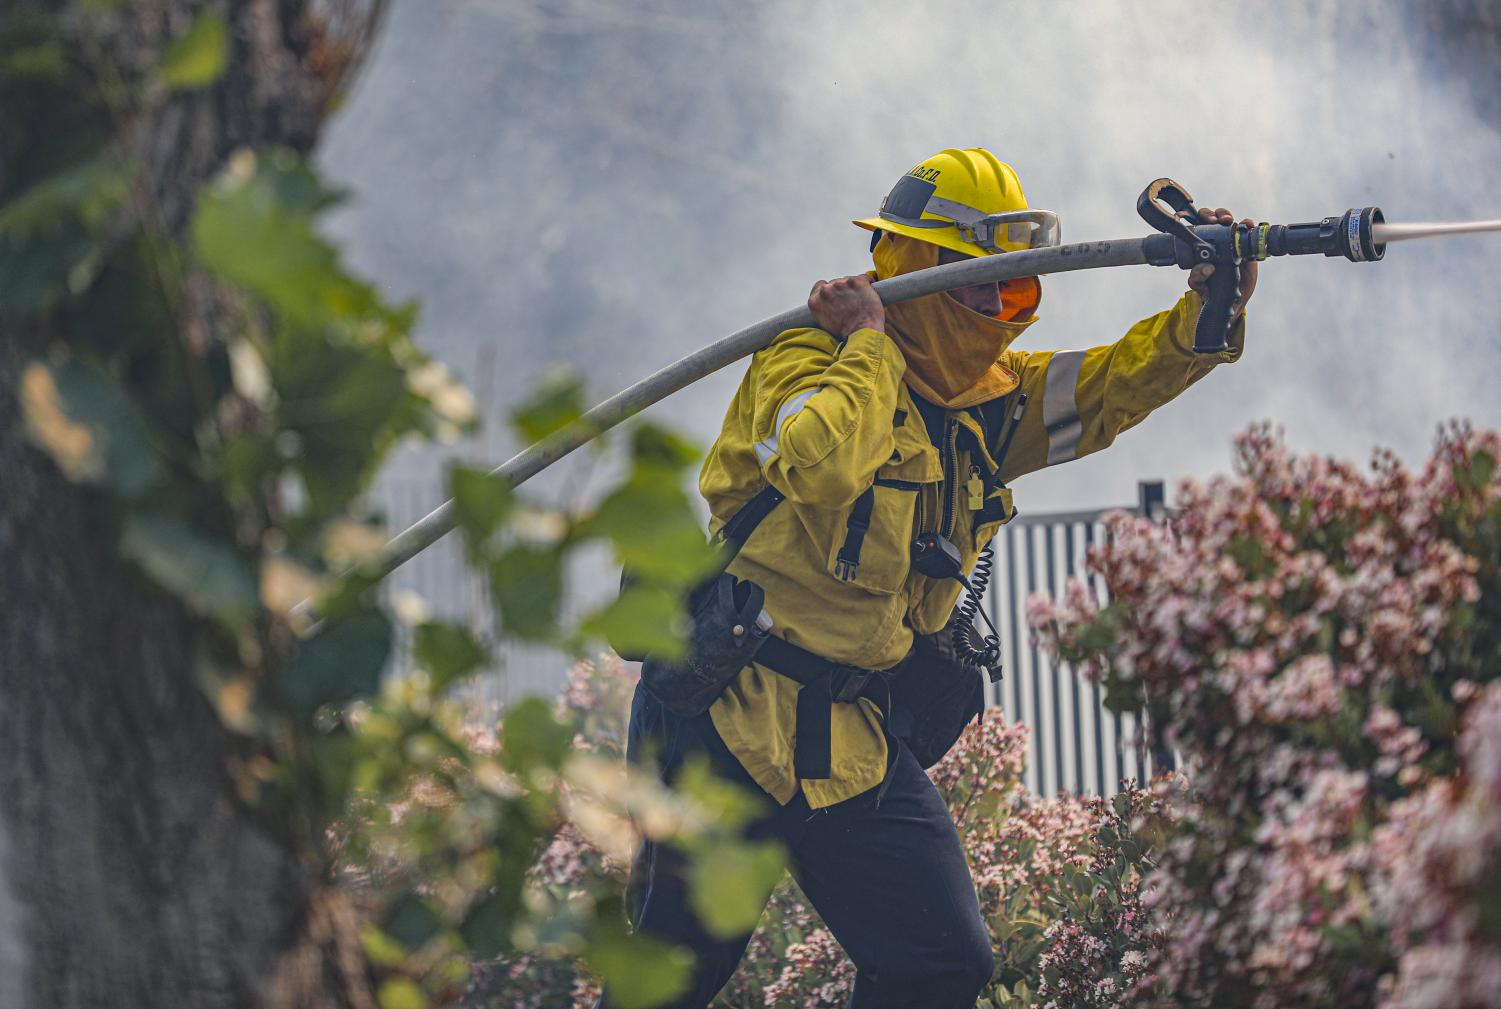 A Ventura County Firefighter works to extinguish a flare up from the Country Fire in Thousand Oaks, CA. on April 29, 2021.